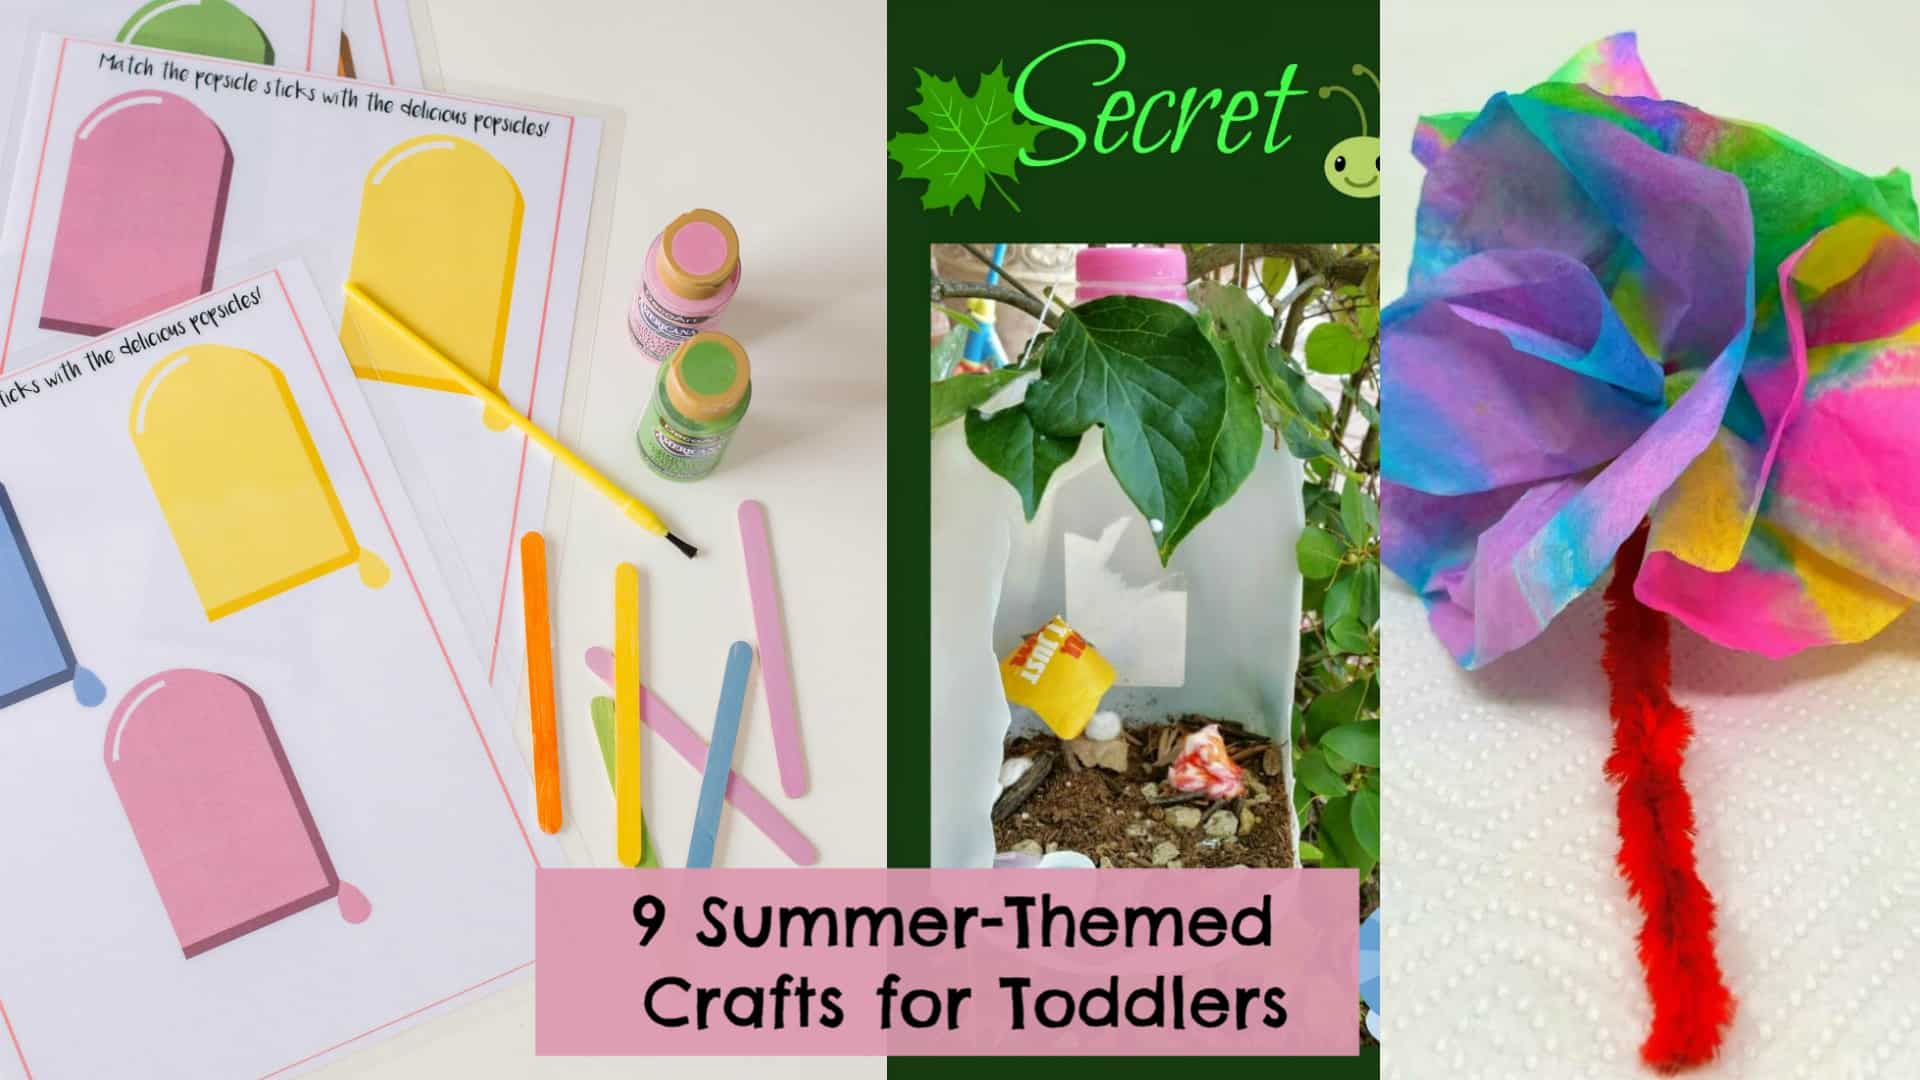 9 Summer Arts and Crafts for Toddlers: Paper Flowers, Sidewalk Paint, & More